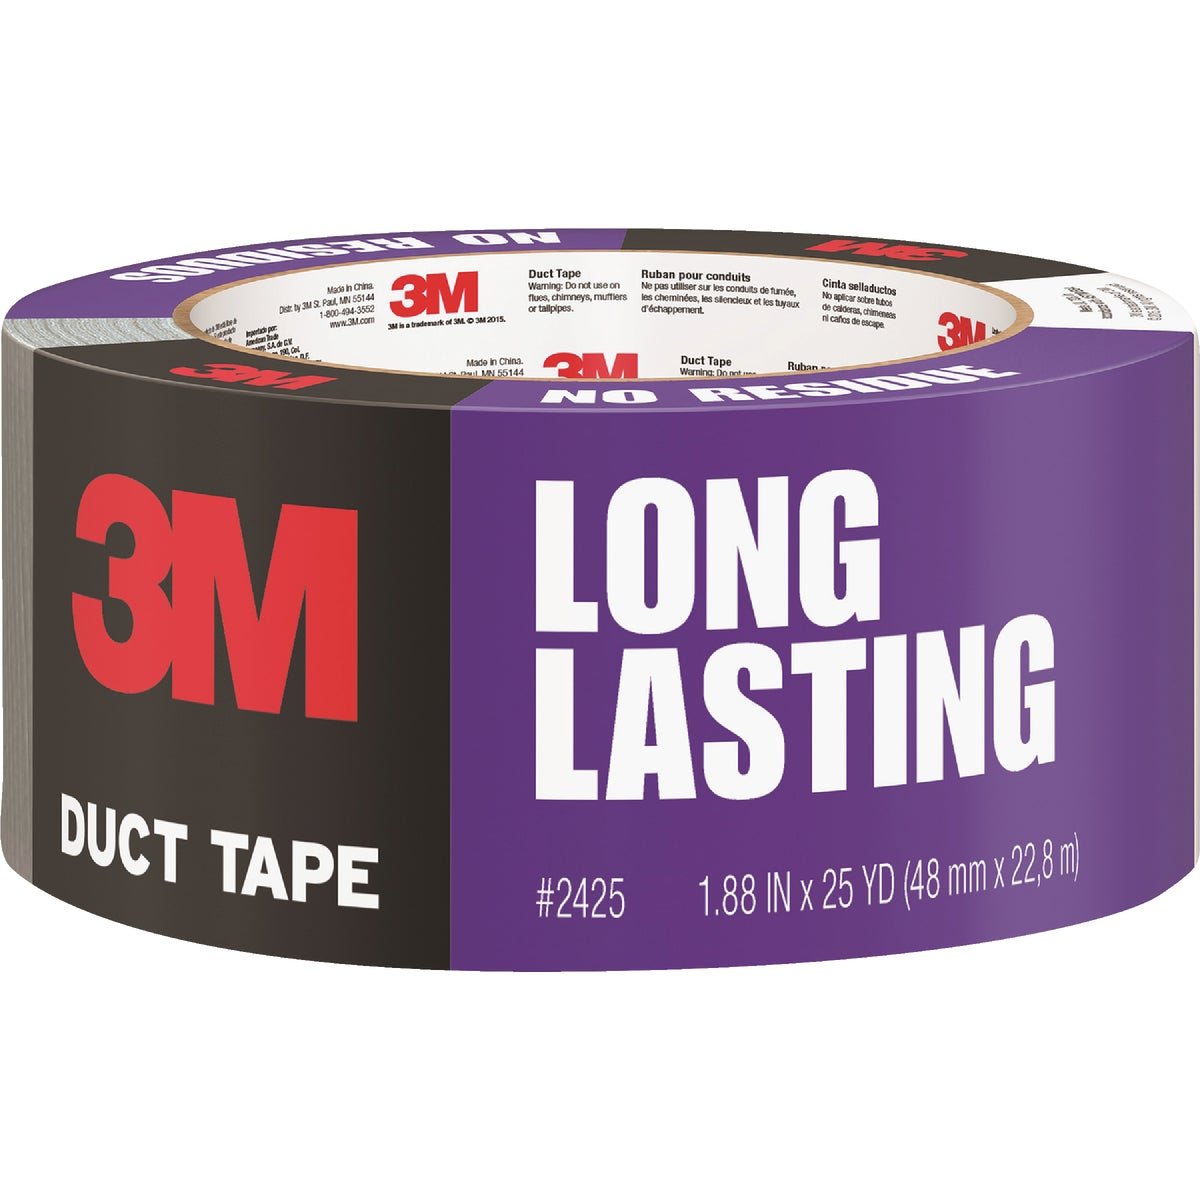 NO RESIDUE DUCT TAPE - P2425 by 3m Co